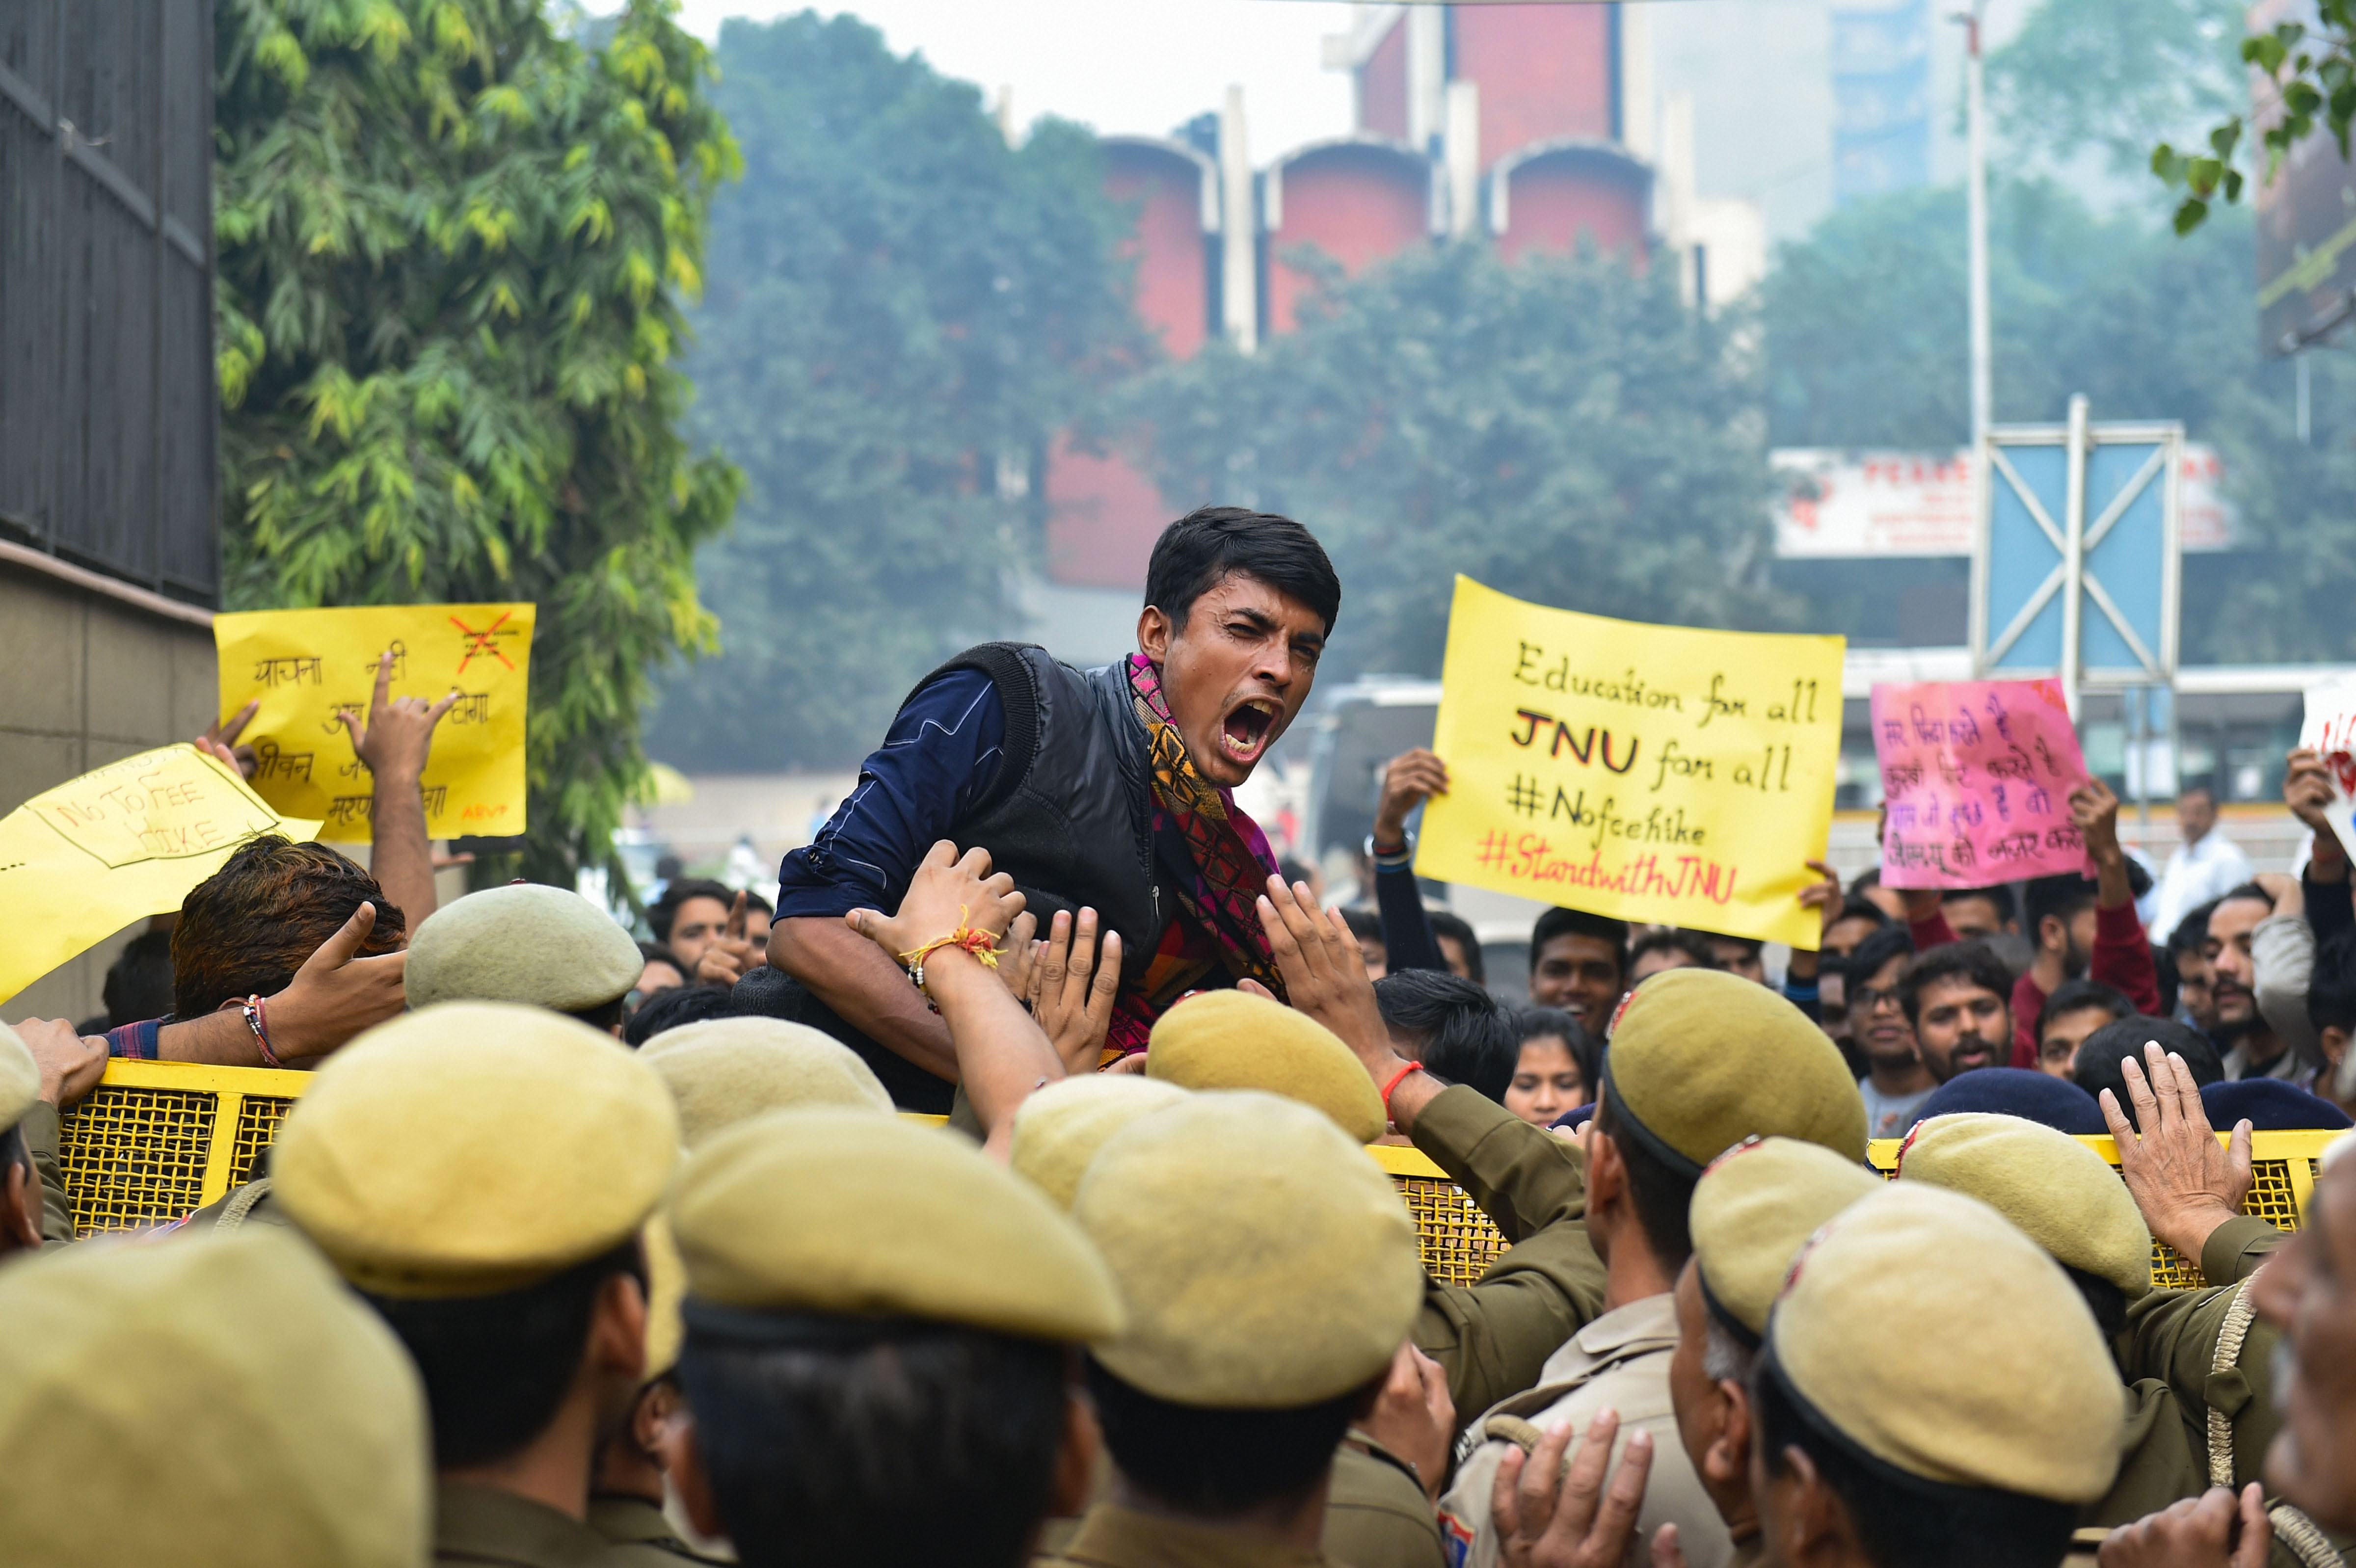 Police stop JNU students who were staging a protest over the hostel fee hike outside the UGC office at ITO in New Delhi, Wednesday, Nov. 13, 2019.